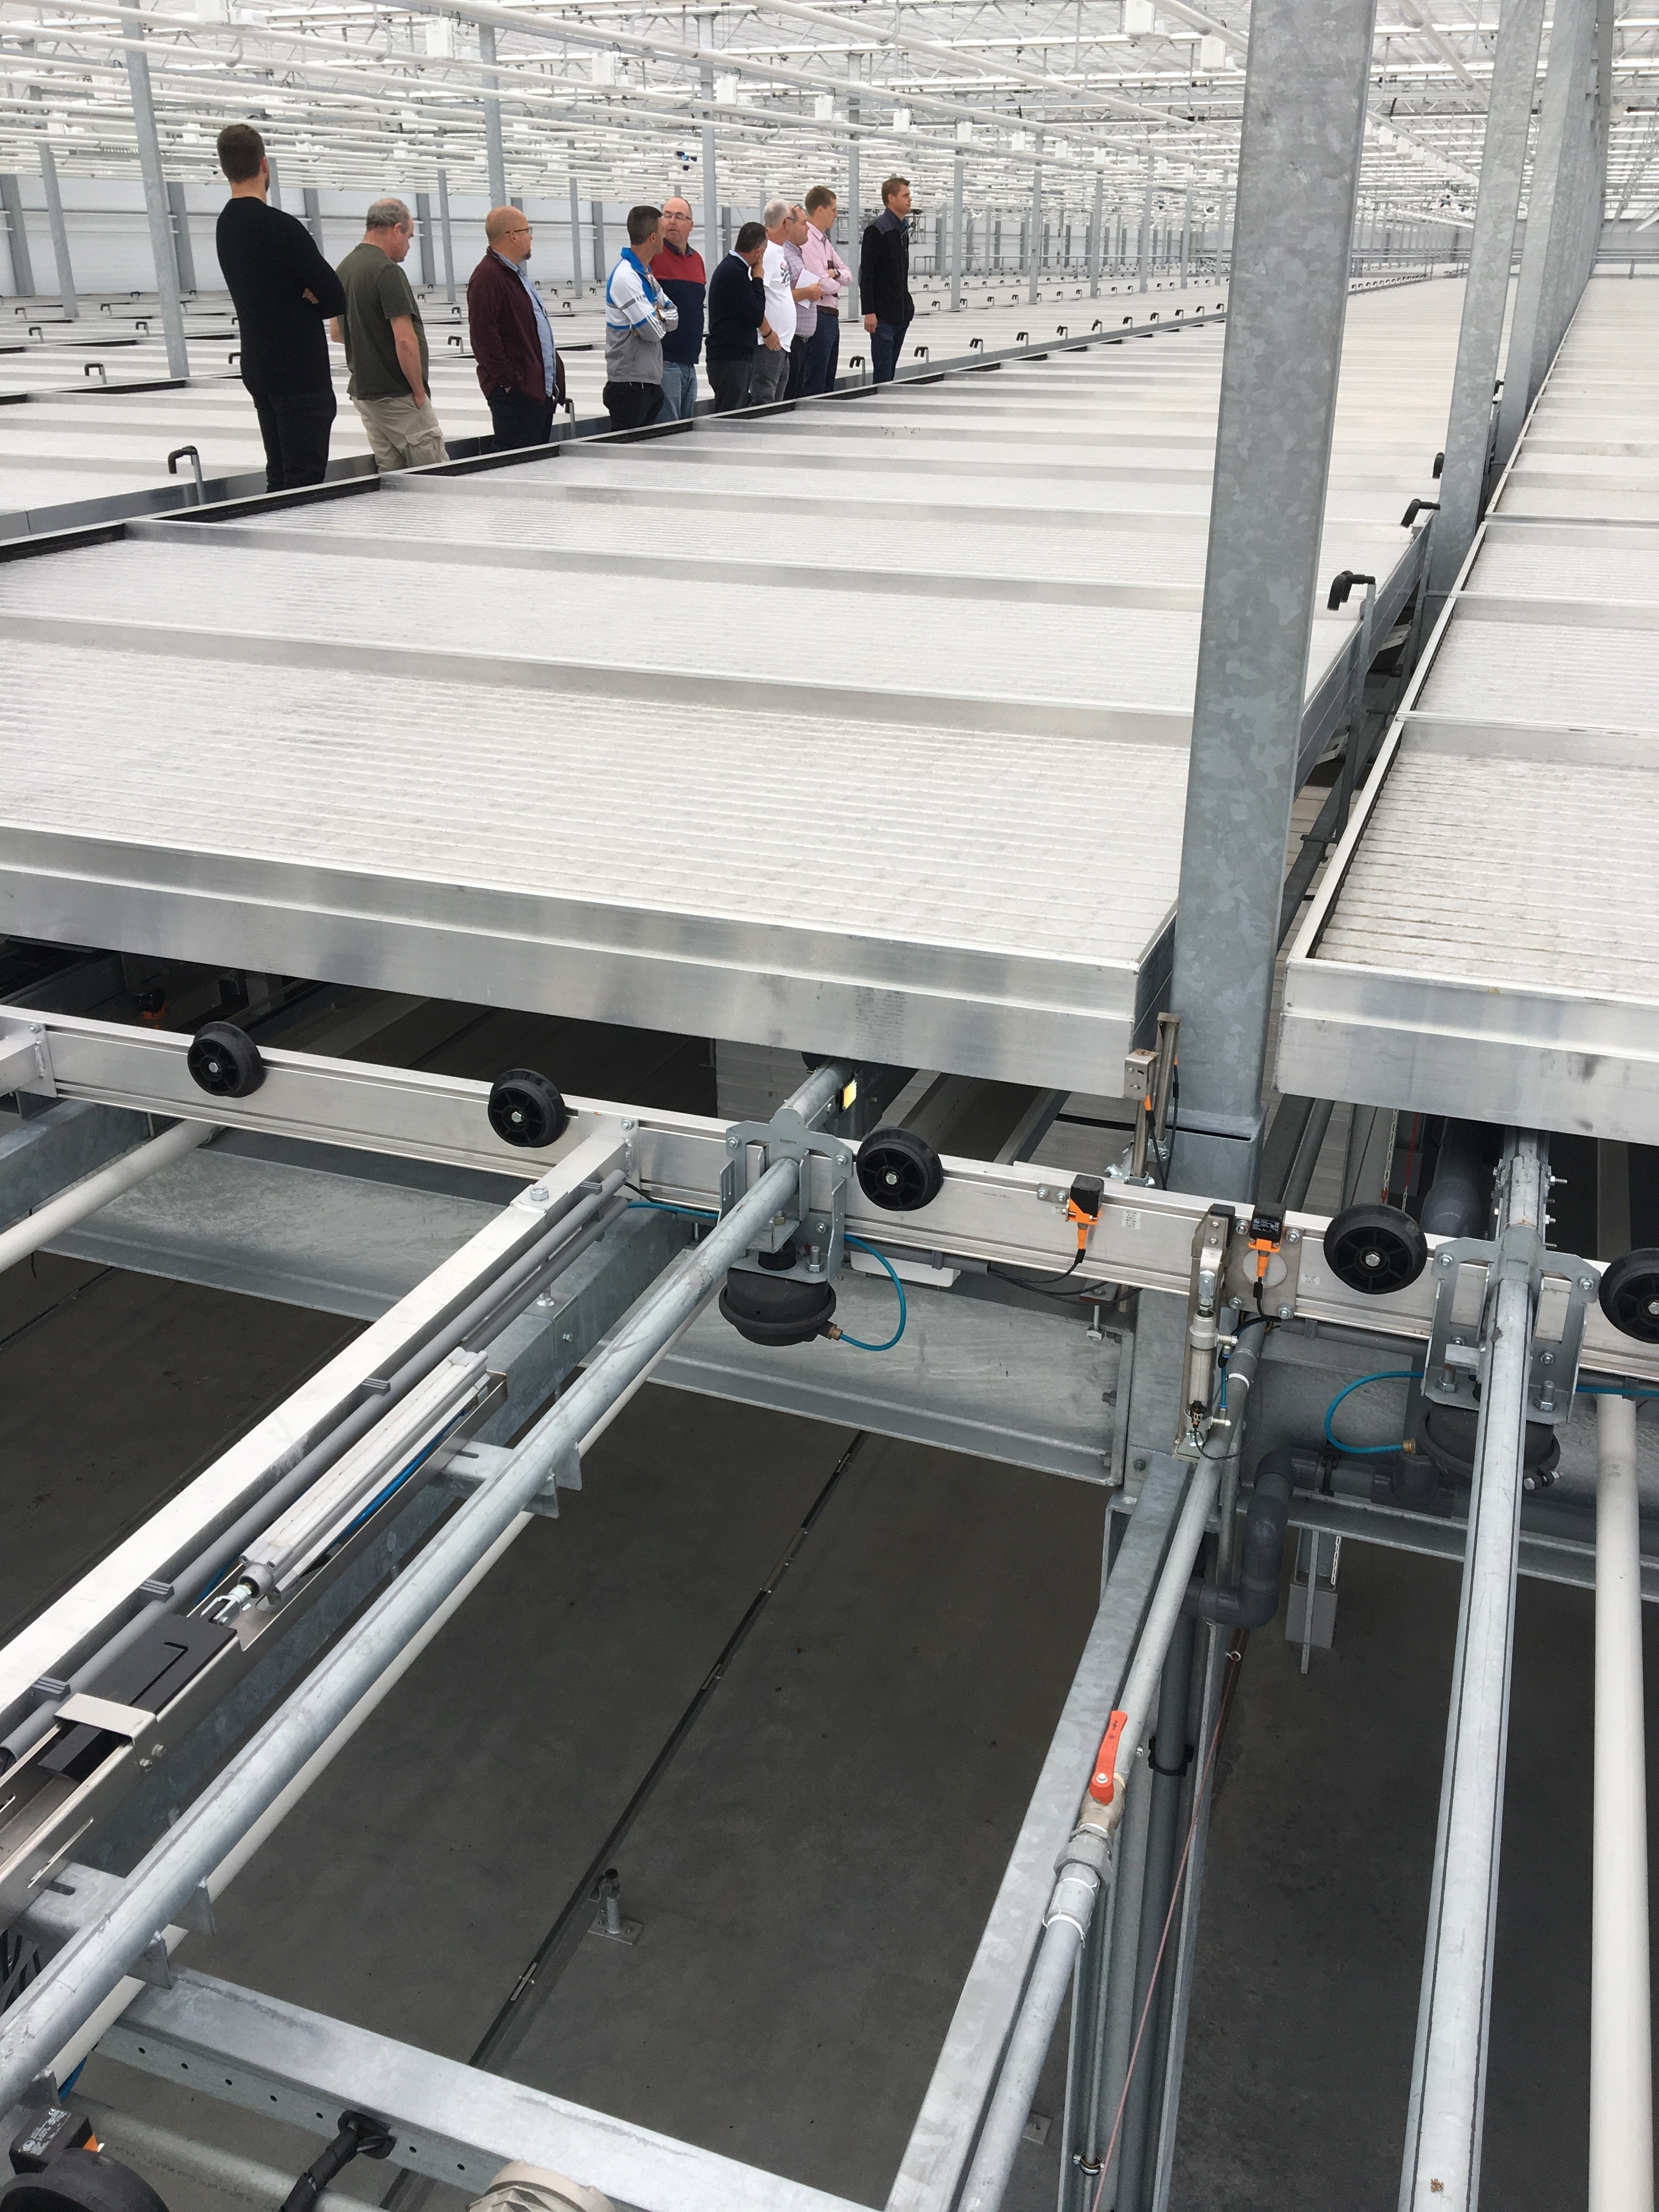 An automated bench system at Perry van der Haak Nursery